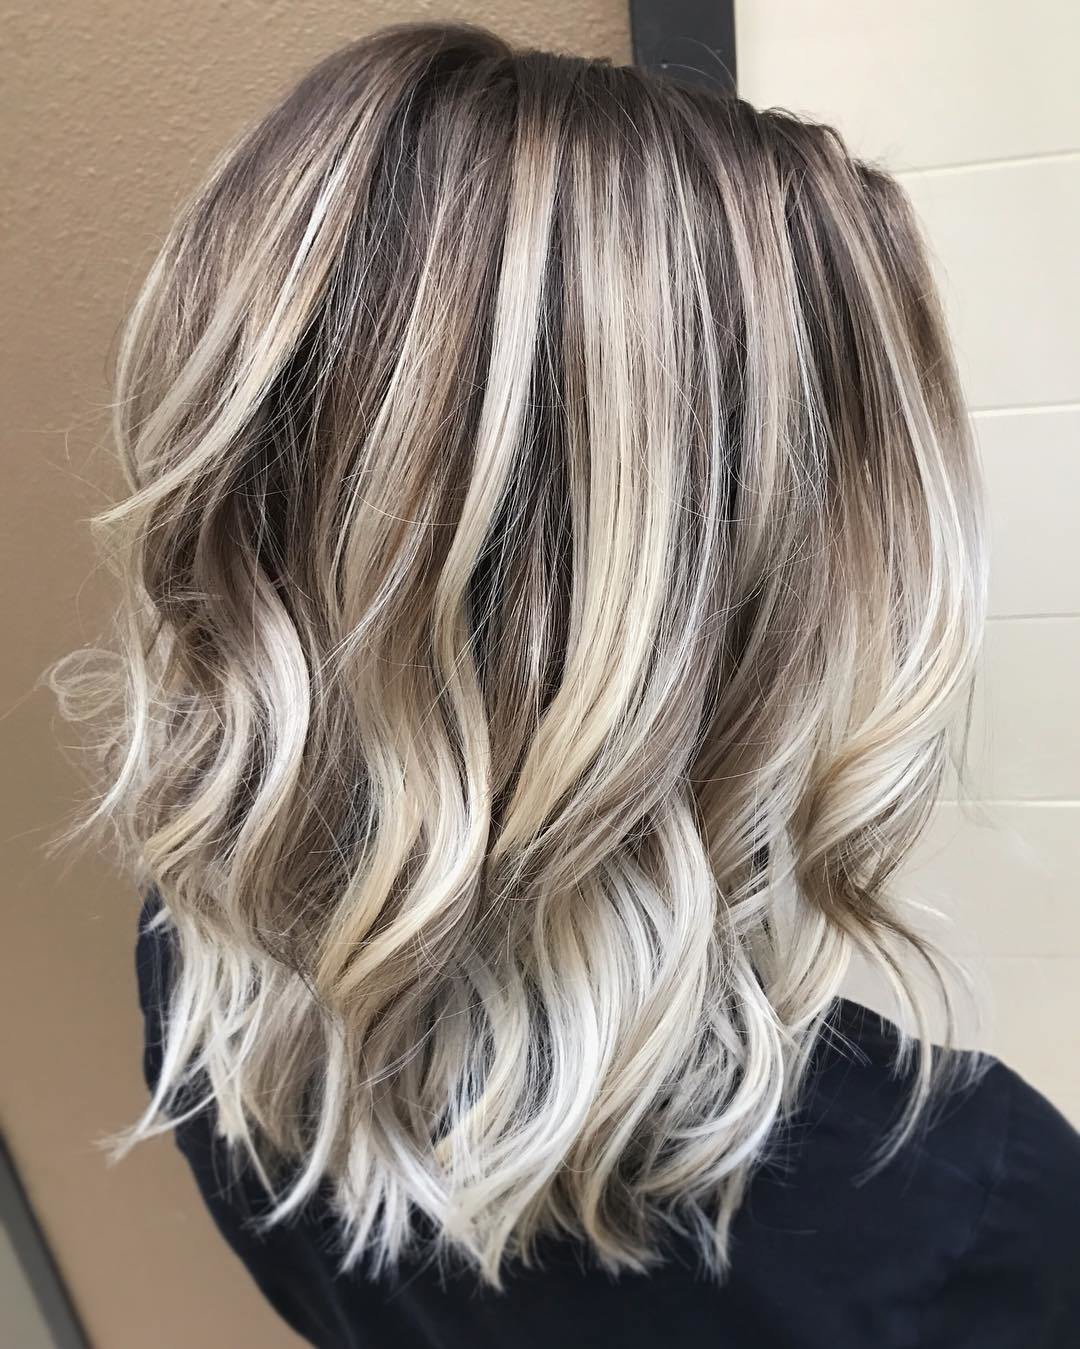 New 10 Ash Blonde Hairstyles For All Skin Tones 2019 Ideas With Pictures